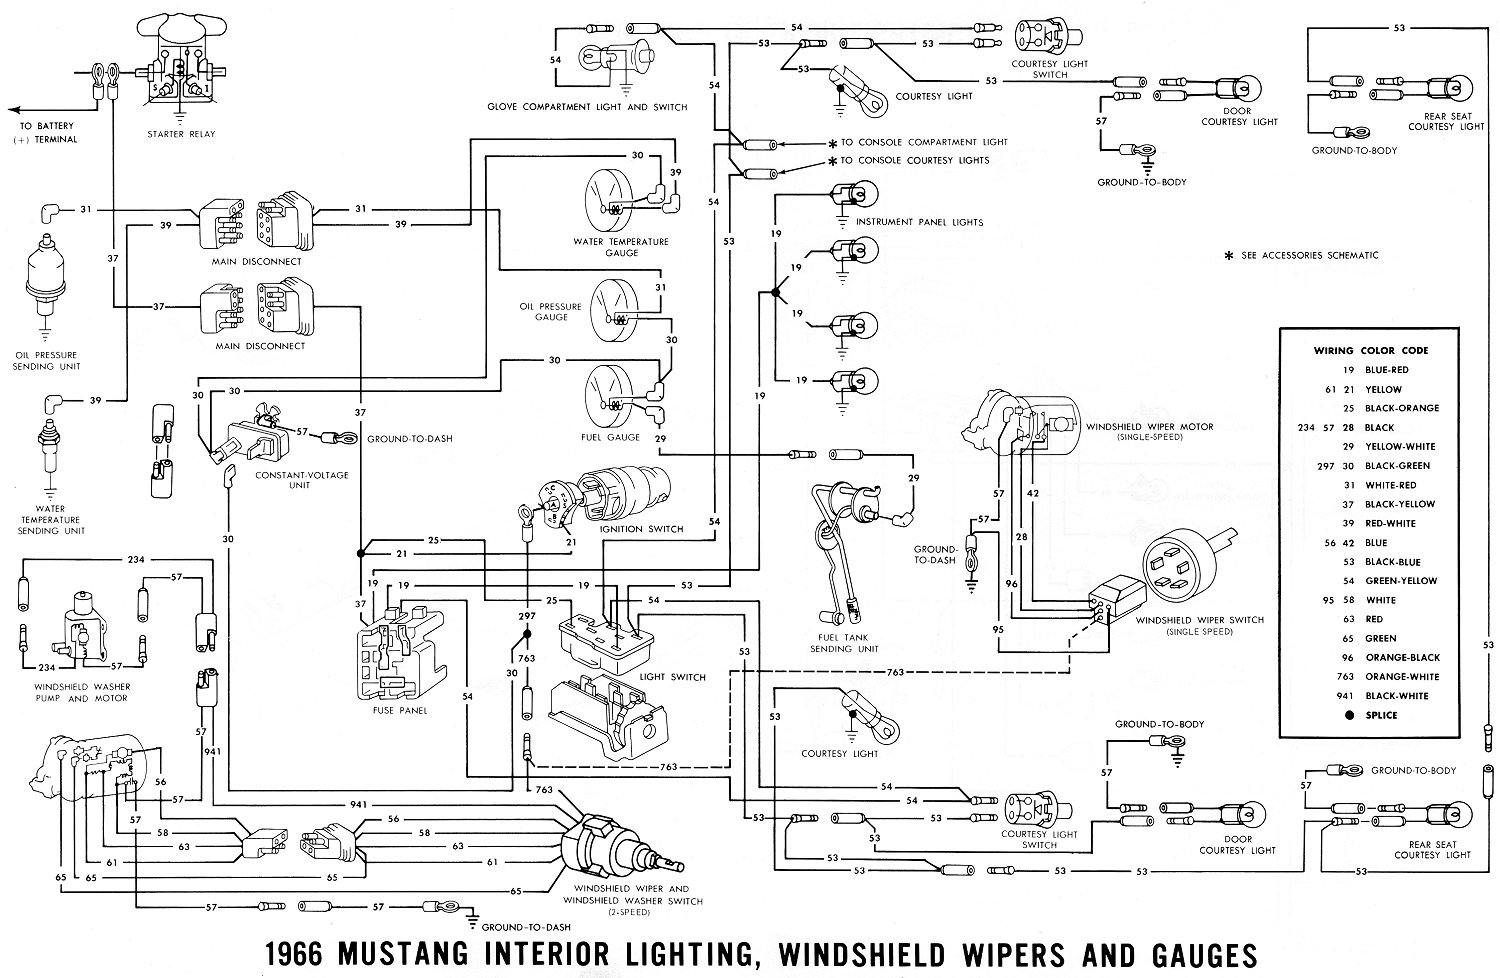 1966 mustang wiring diagrams average joe restoration rh averagejoerestoration com mustang wiring diagram 2011 66 mustang wiring diagram